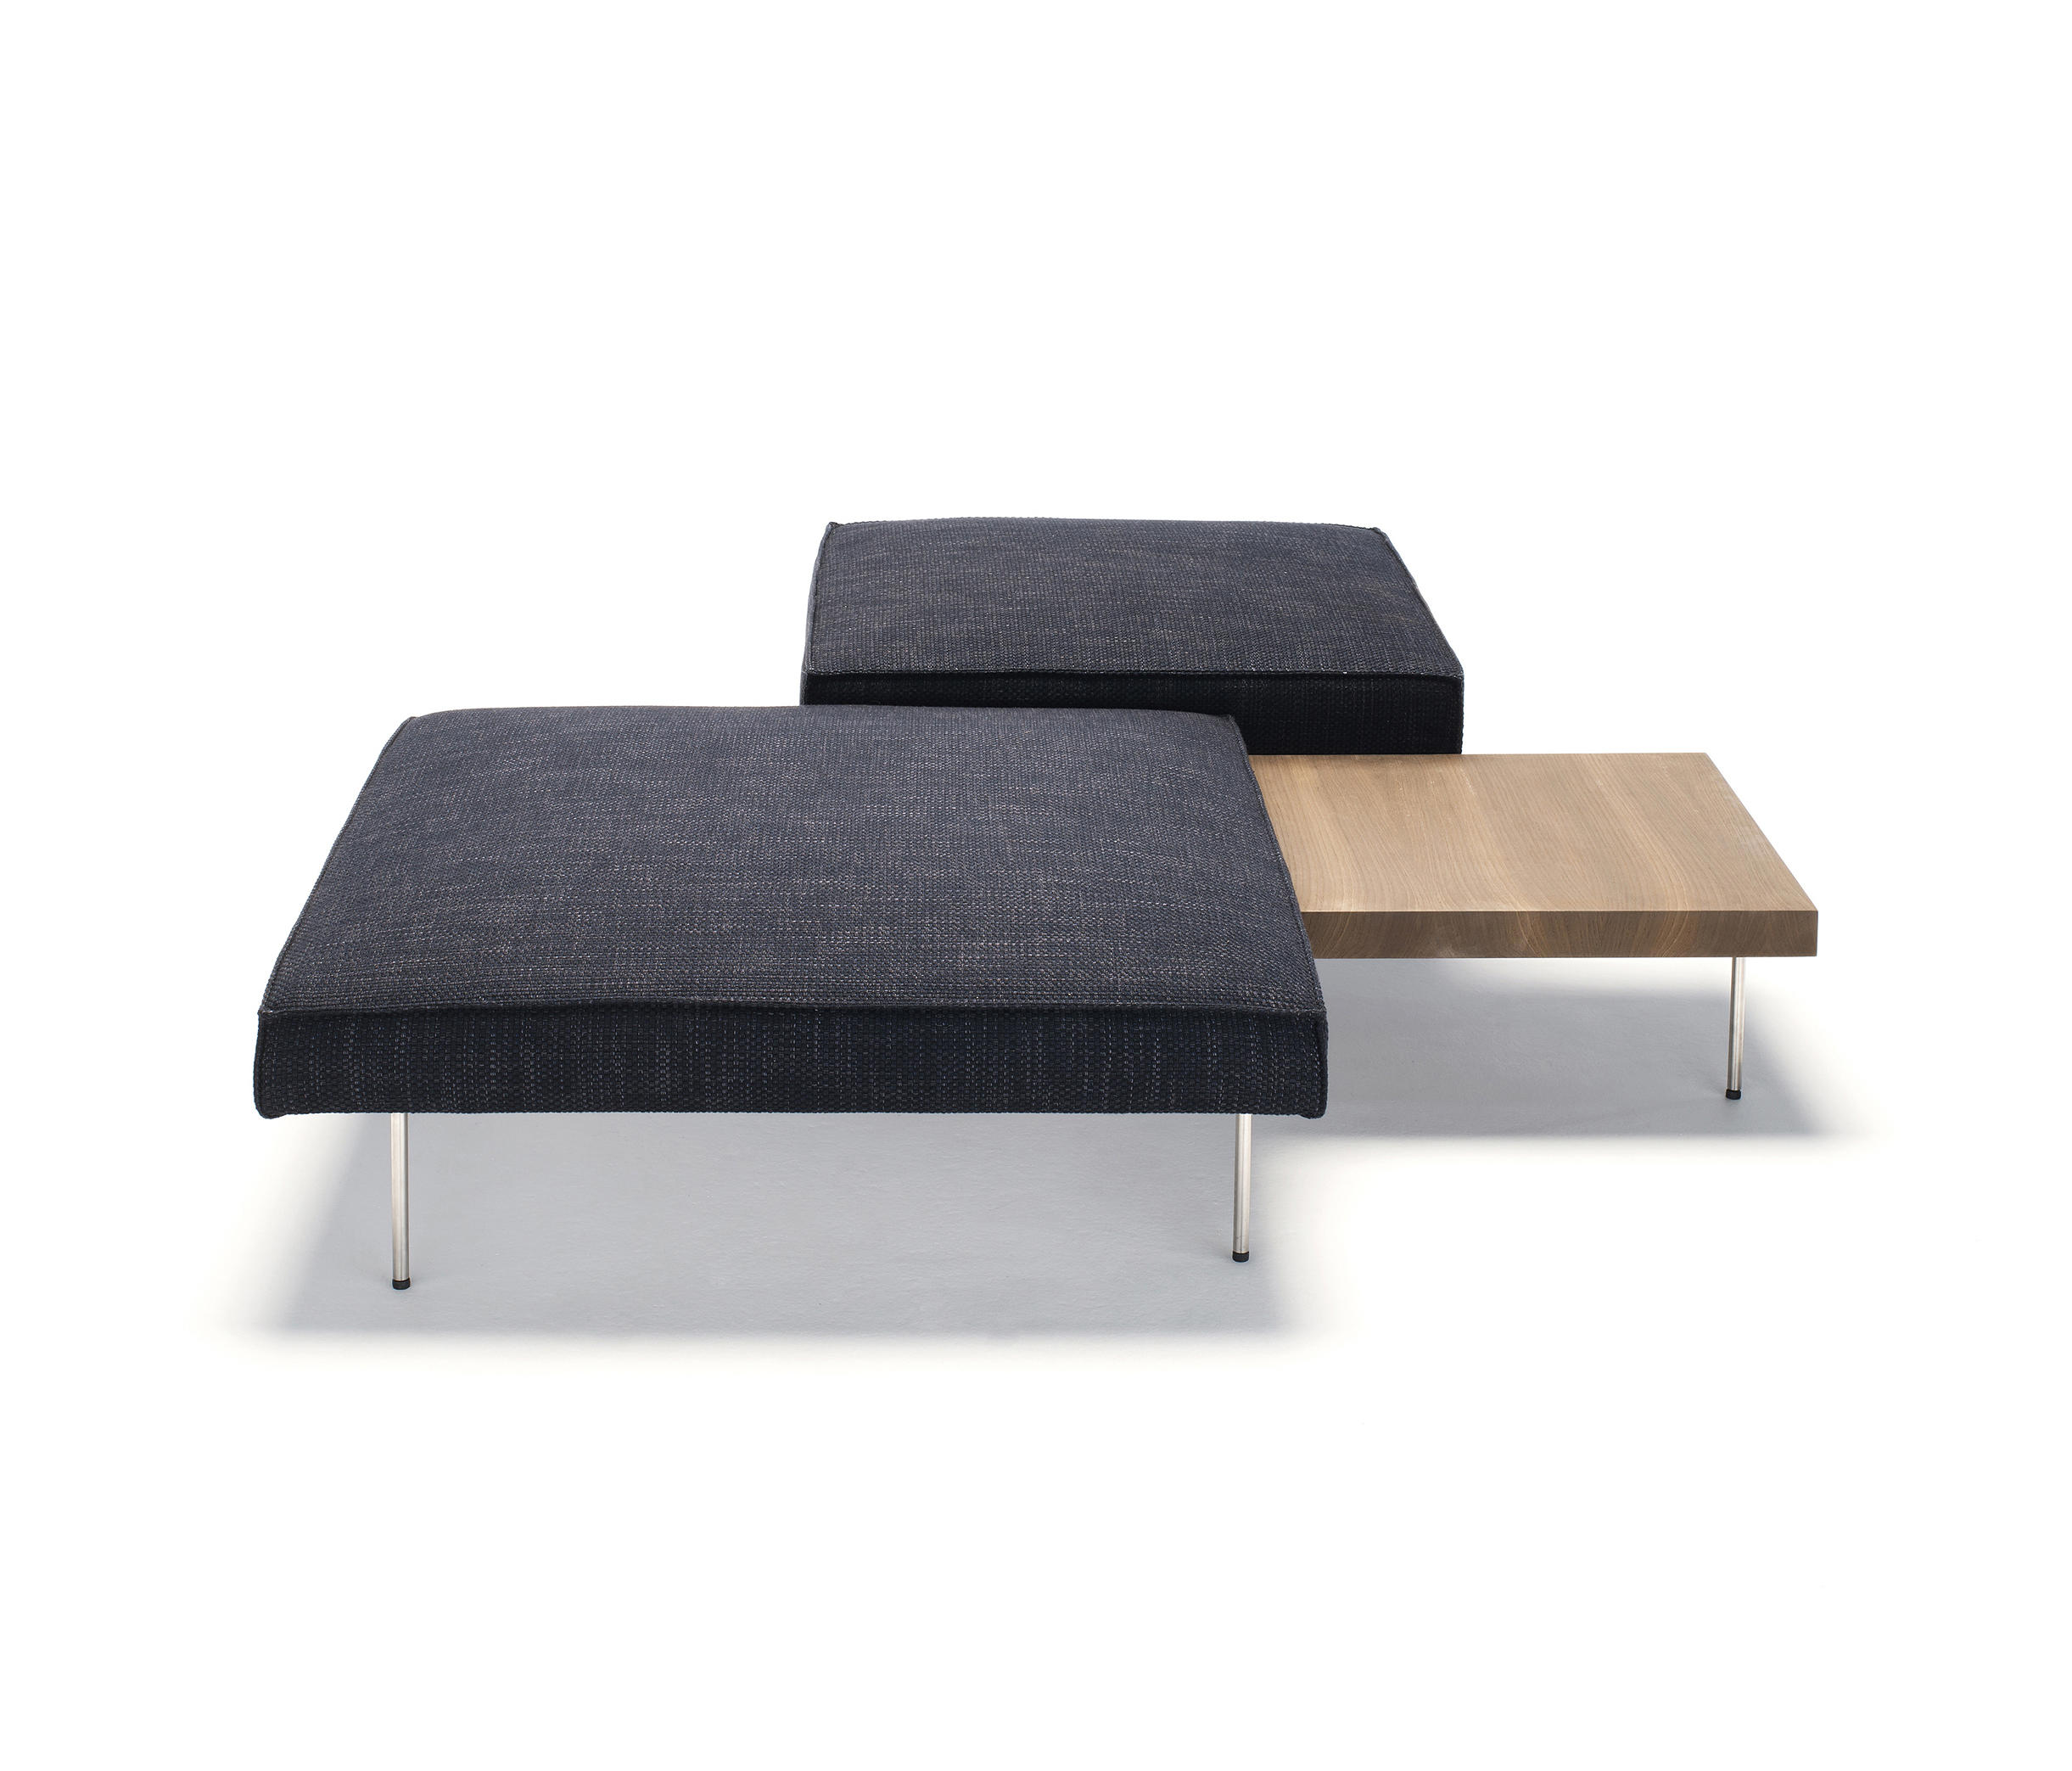 Upland Poufs From Living Divani Architonic